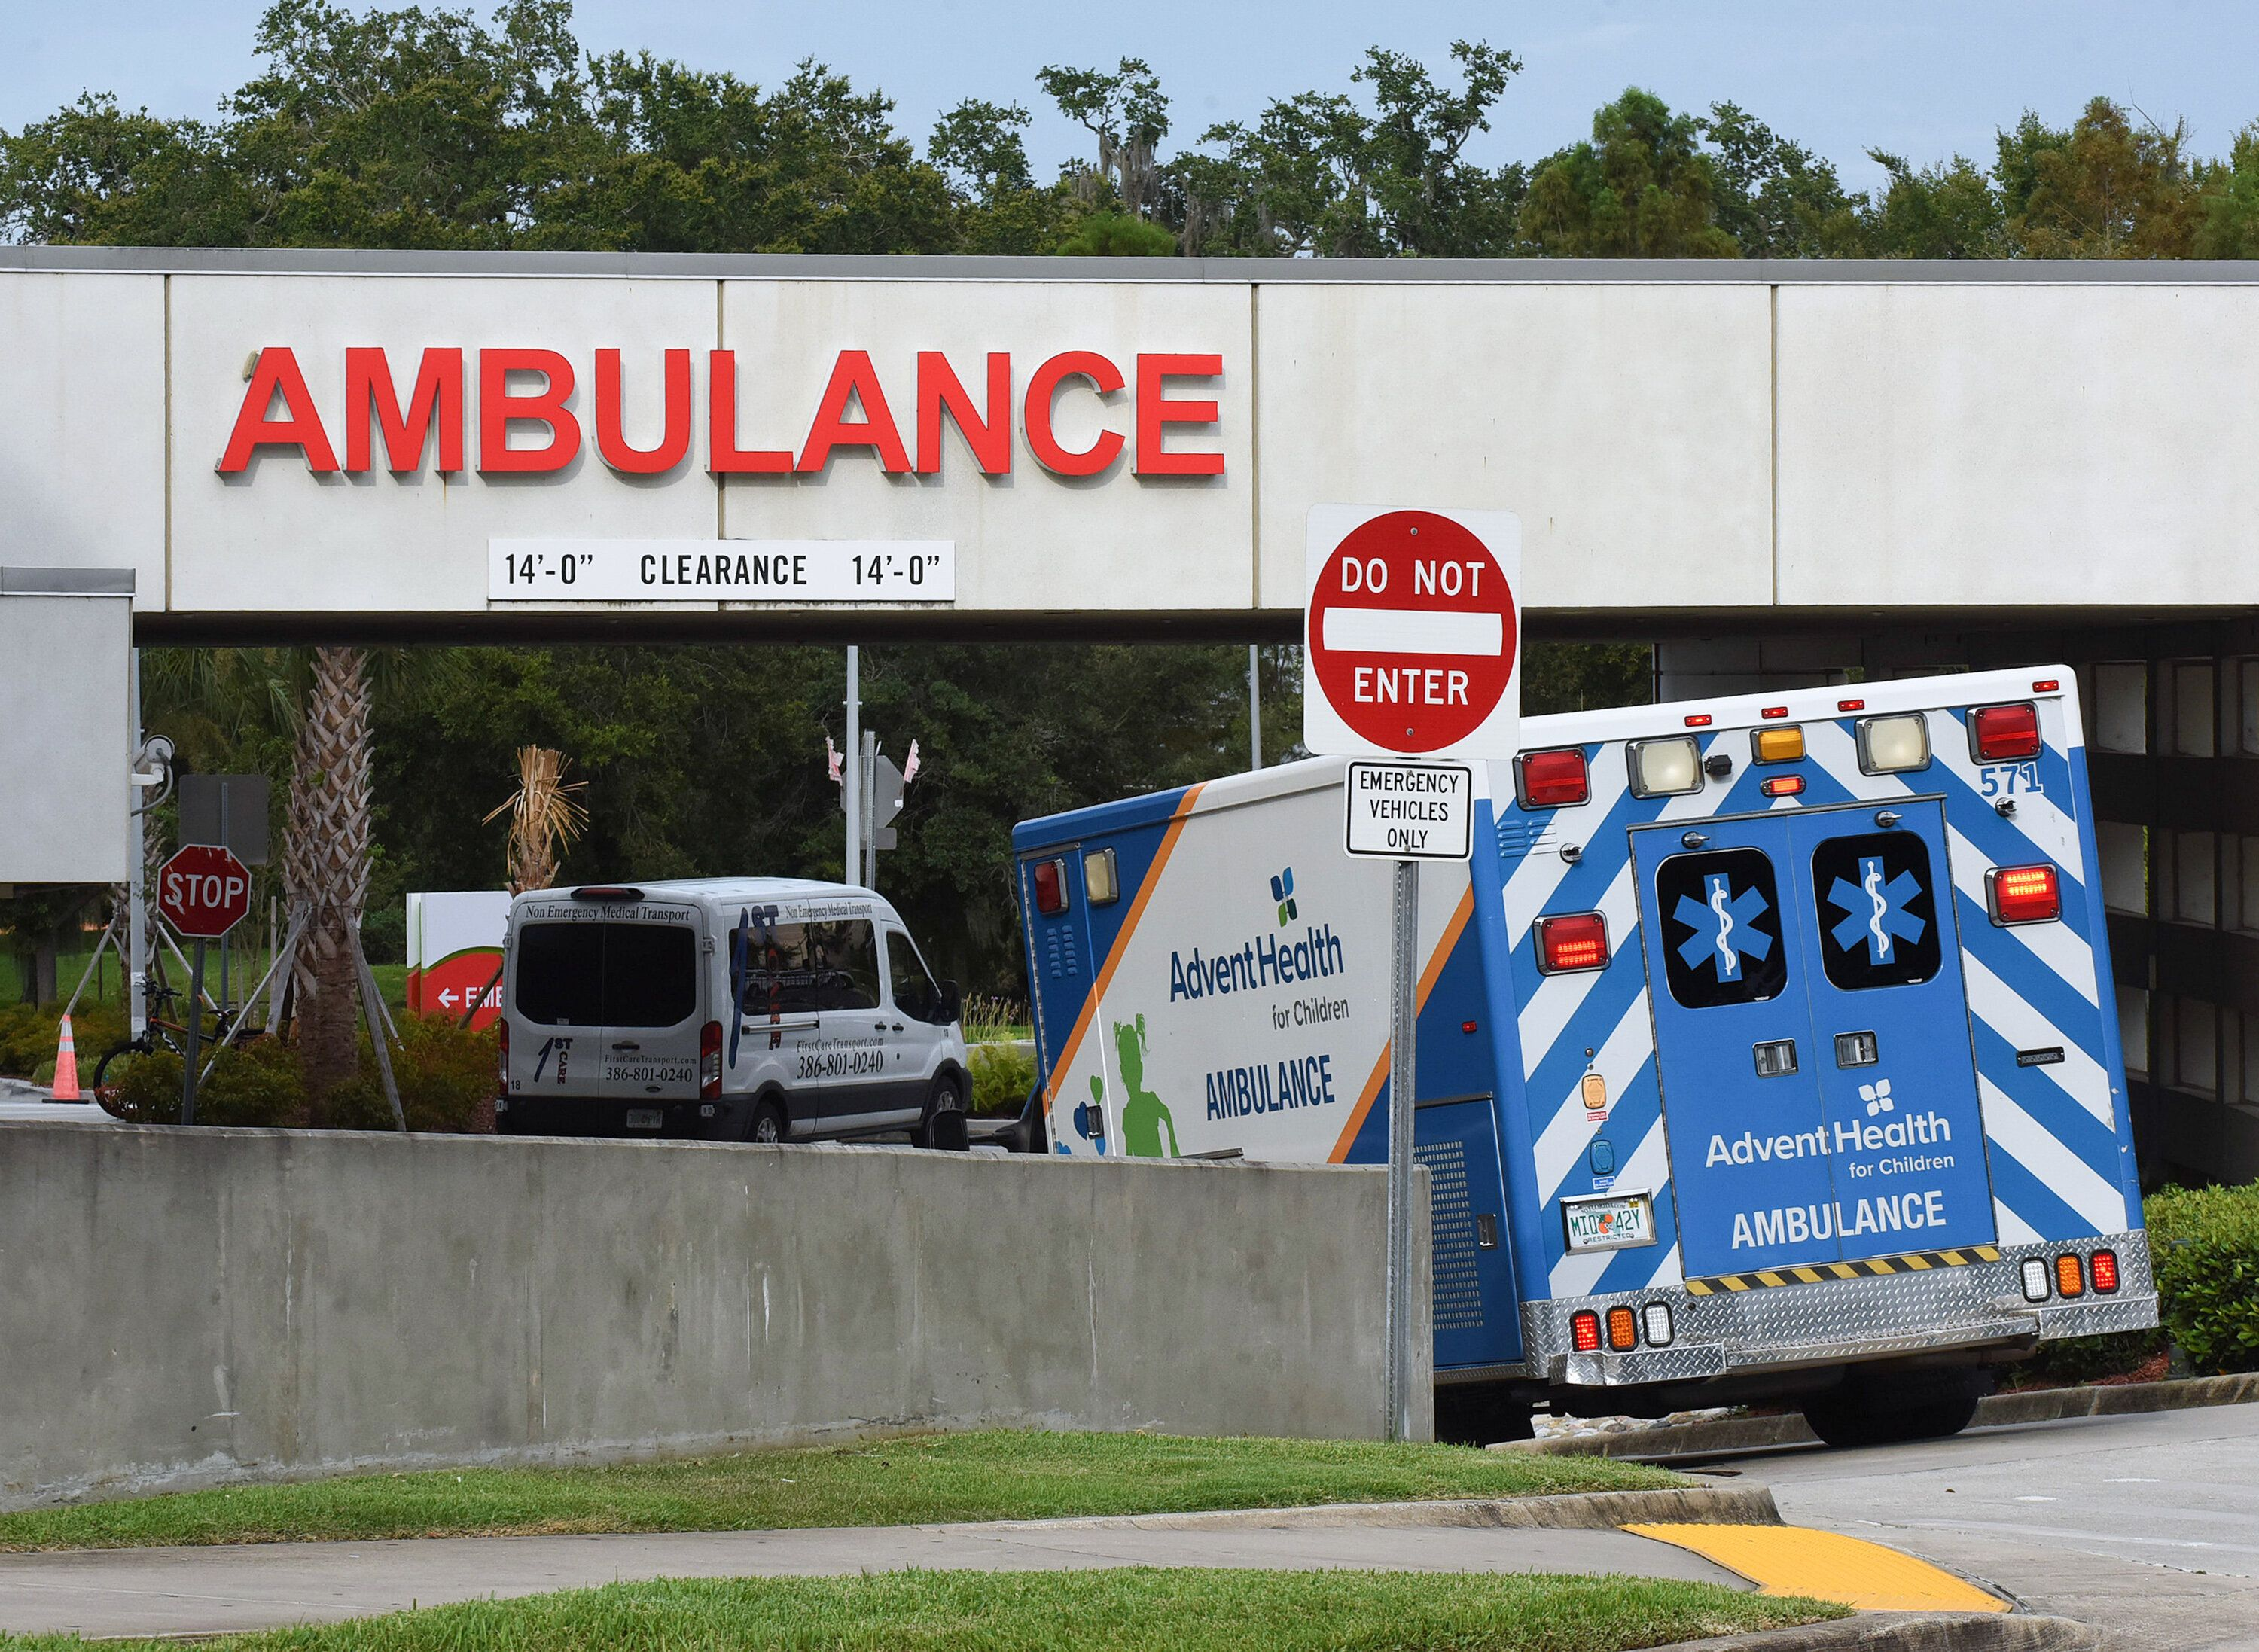 An ambulance arrives at the emergency department at AdventHealth hospital in Orlando on July 26, the day that hospital offici